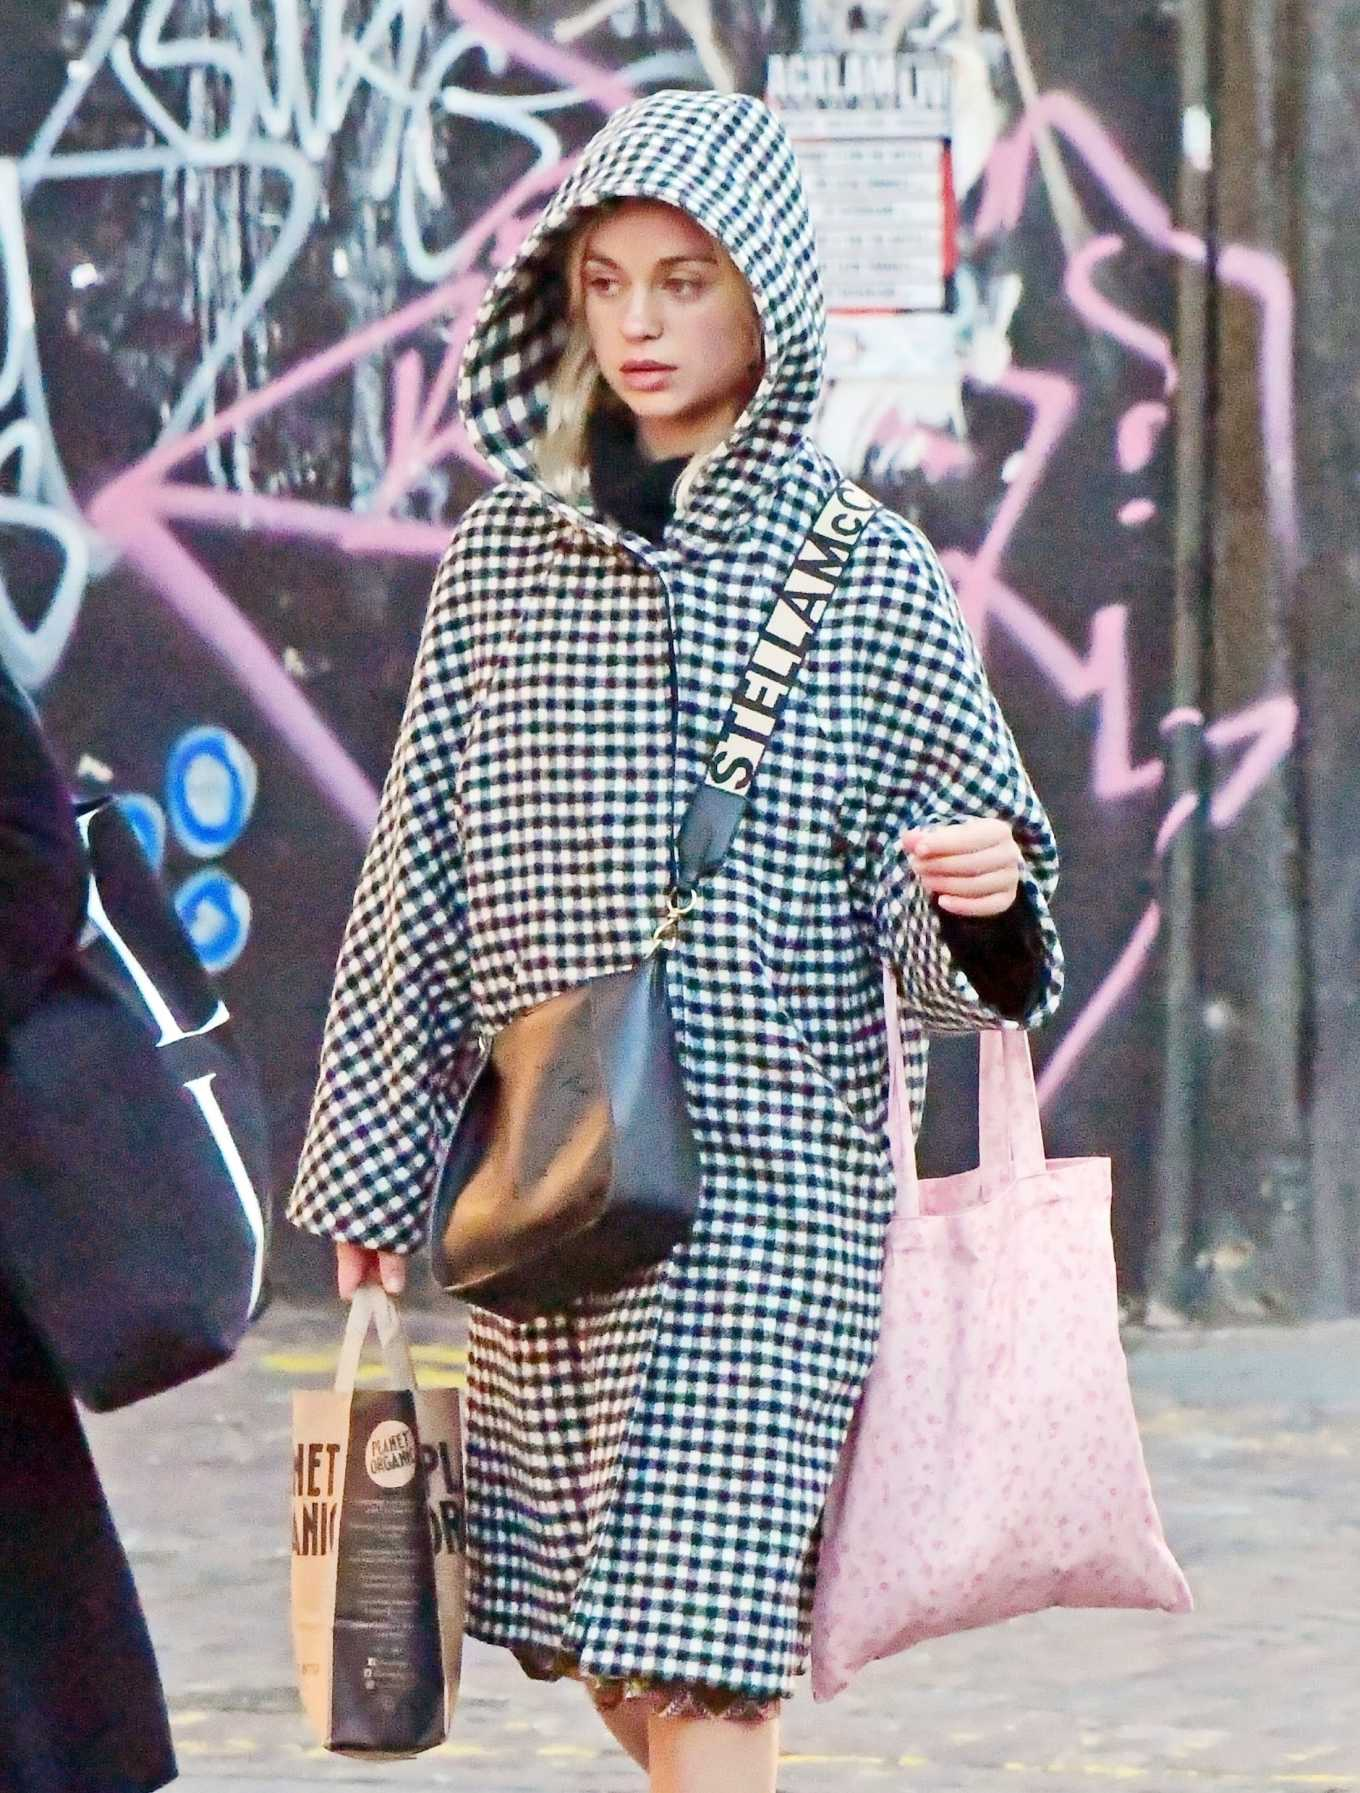 Amelia Windsor 2020 : Amelia Windsor – Looks stylis while out in the trendy area of Notting Hill-27